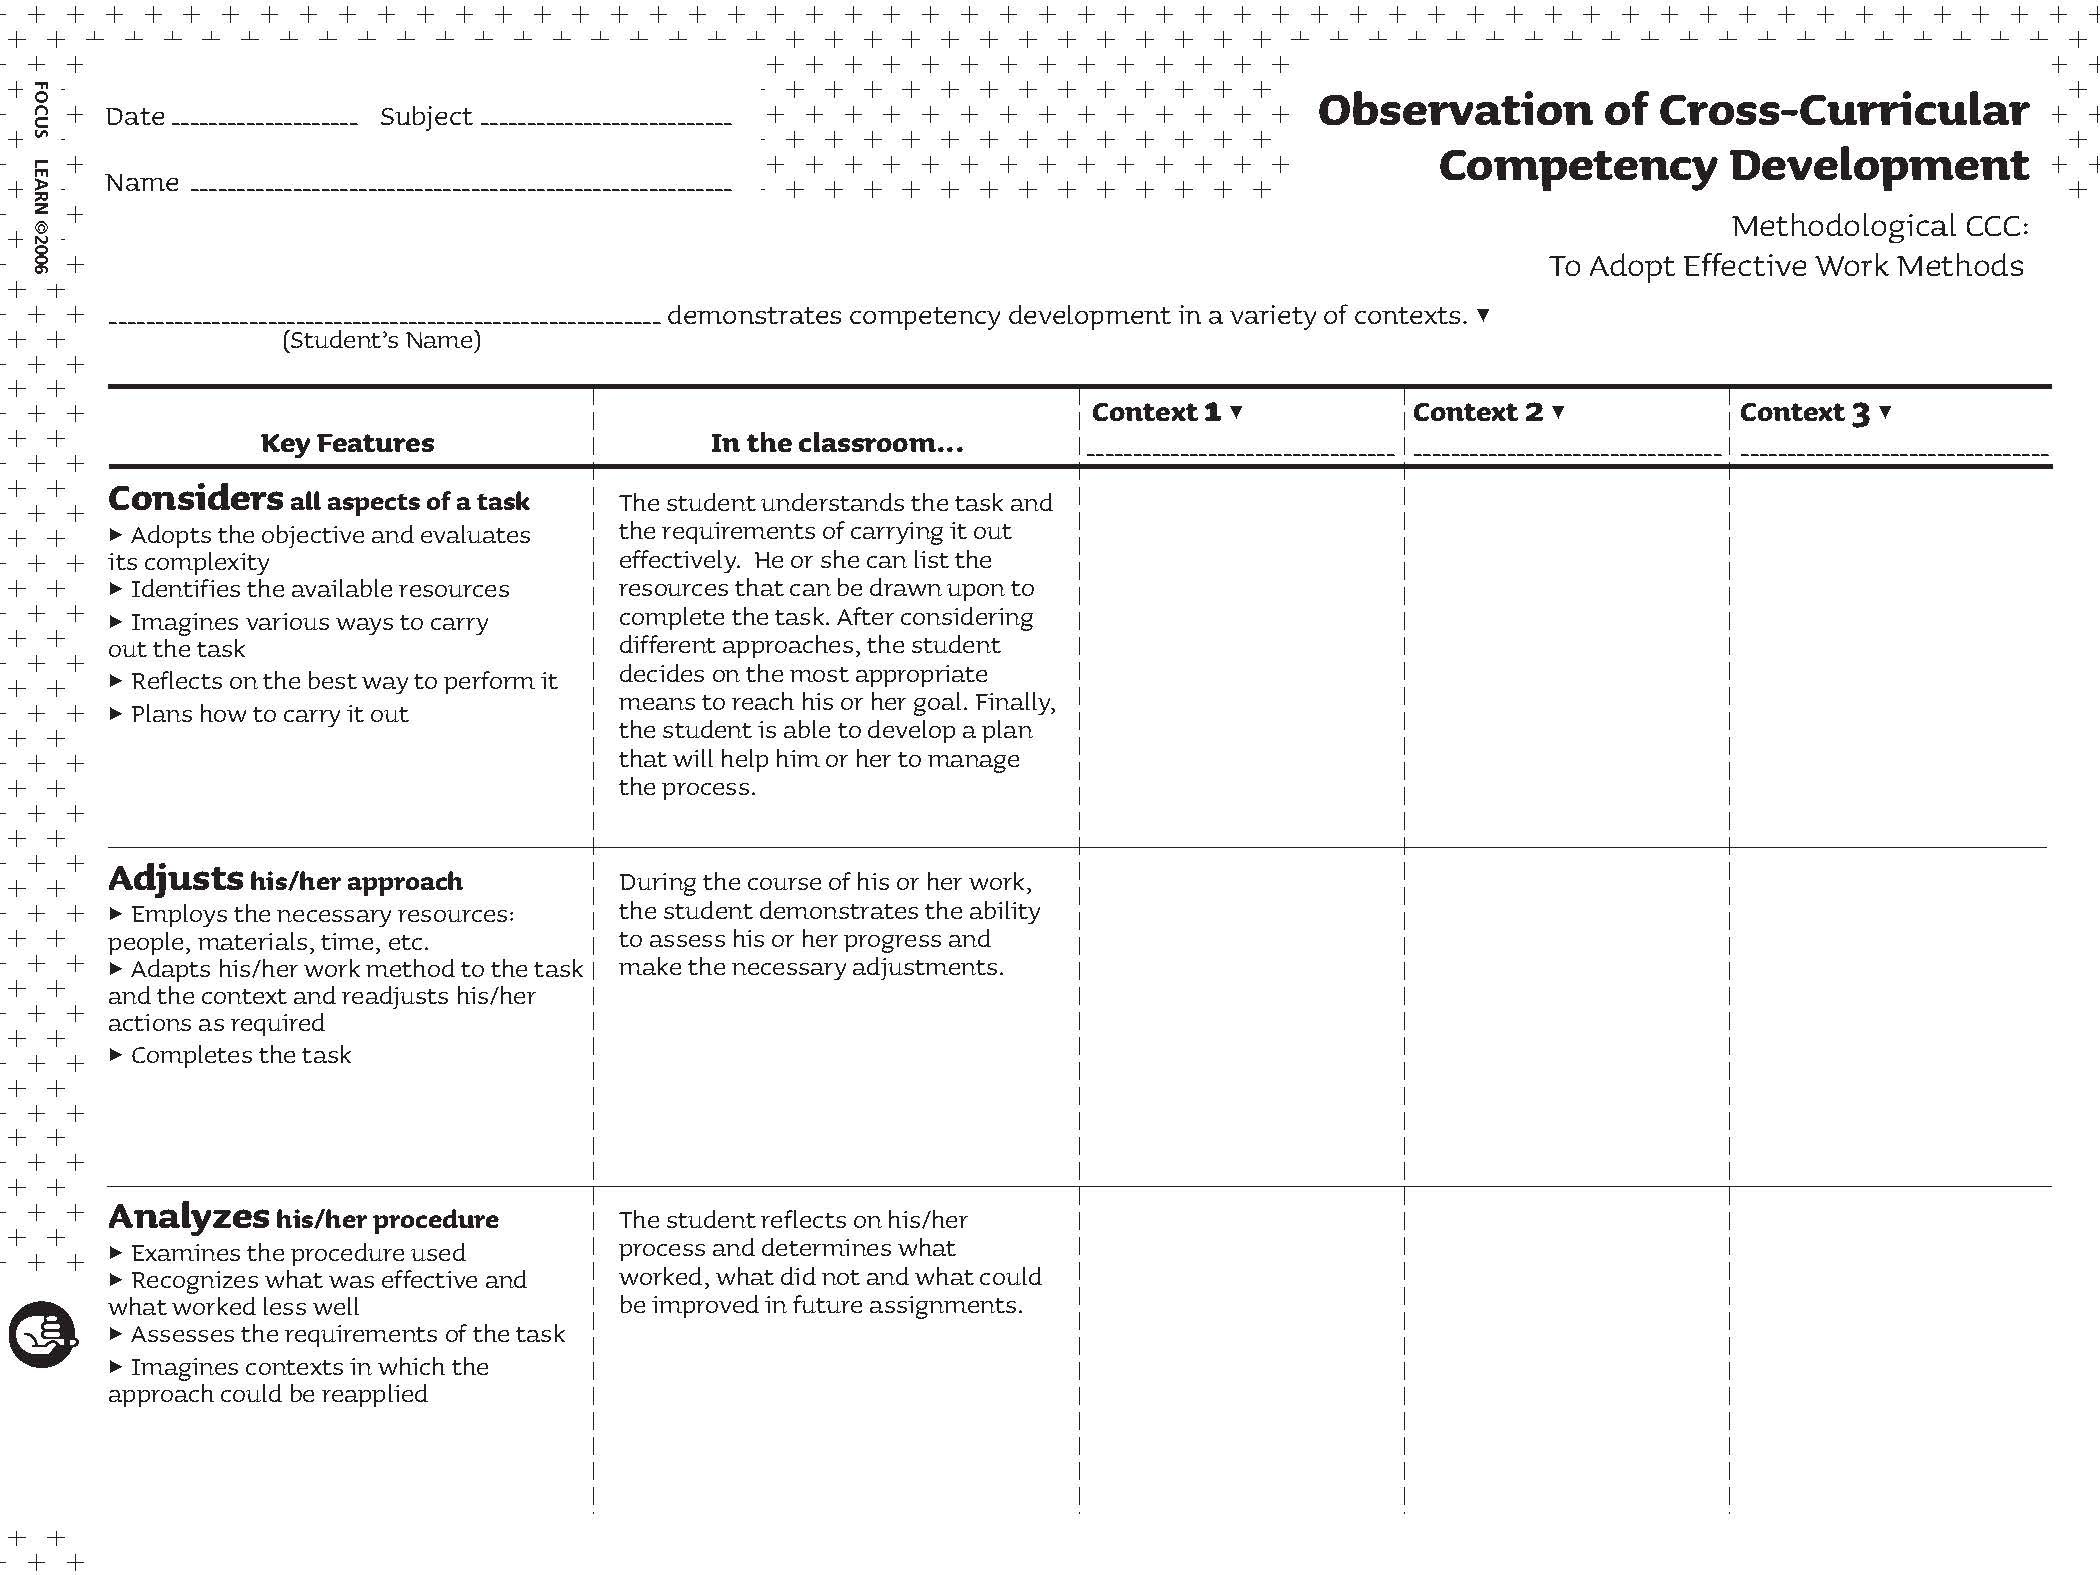 Observation of Cross-Curricular Competency Development